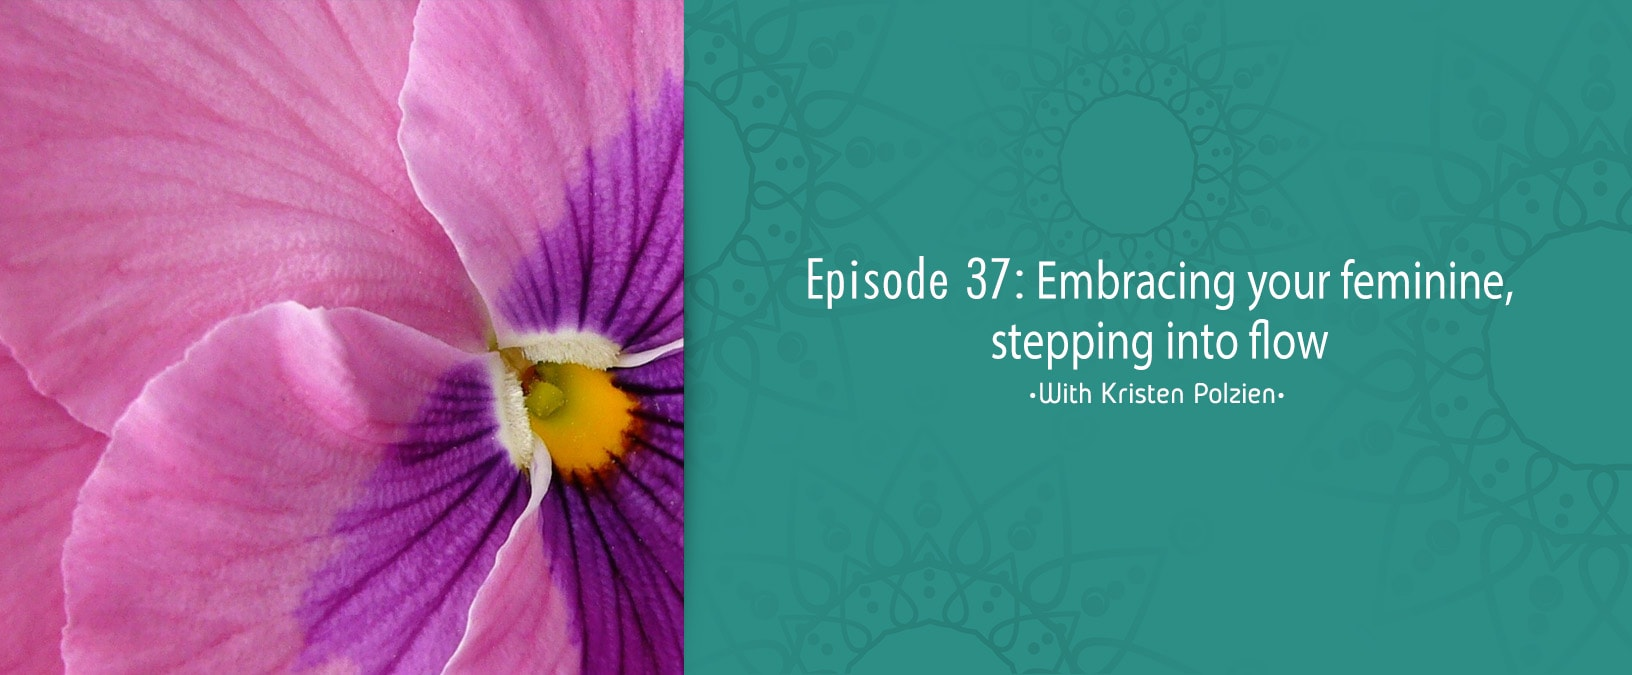 Embracing your feminine, stepping into flow